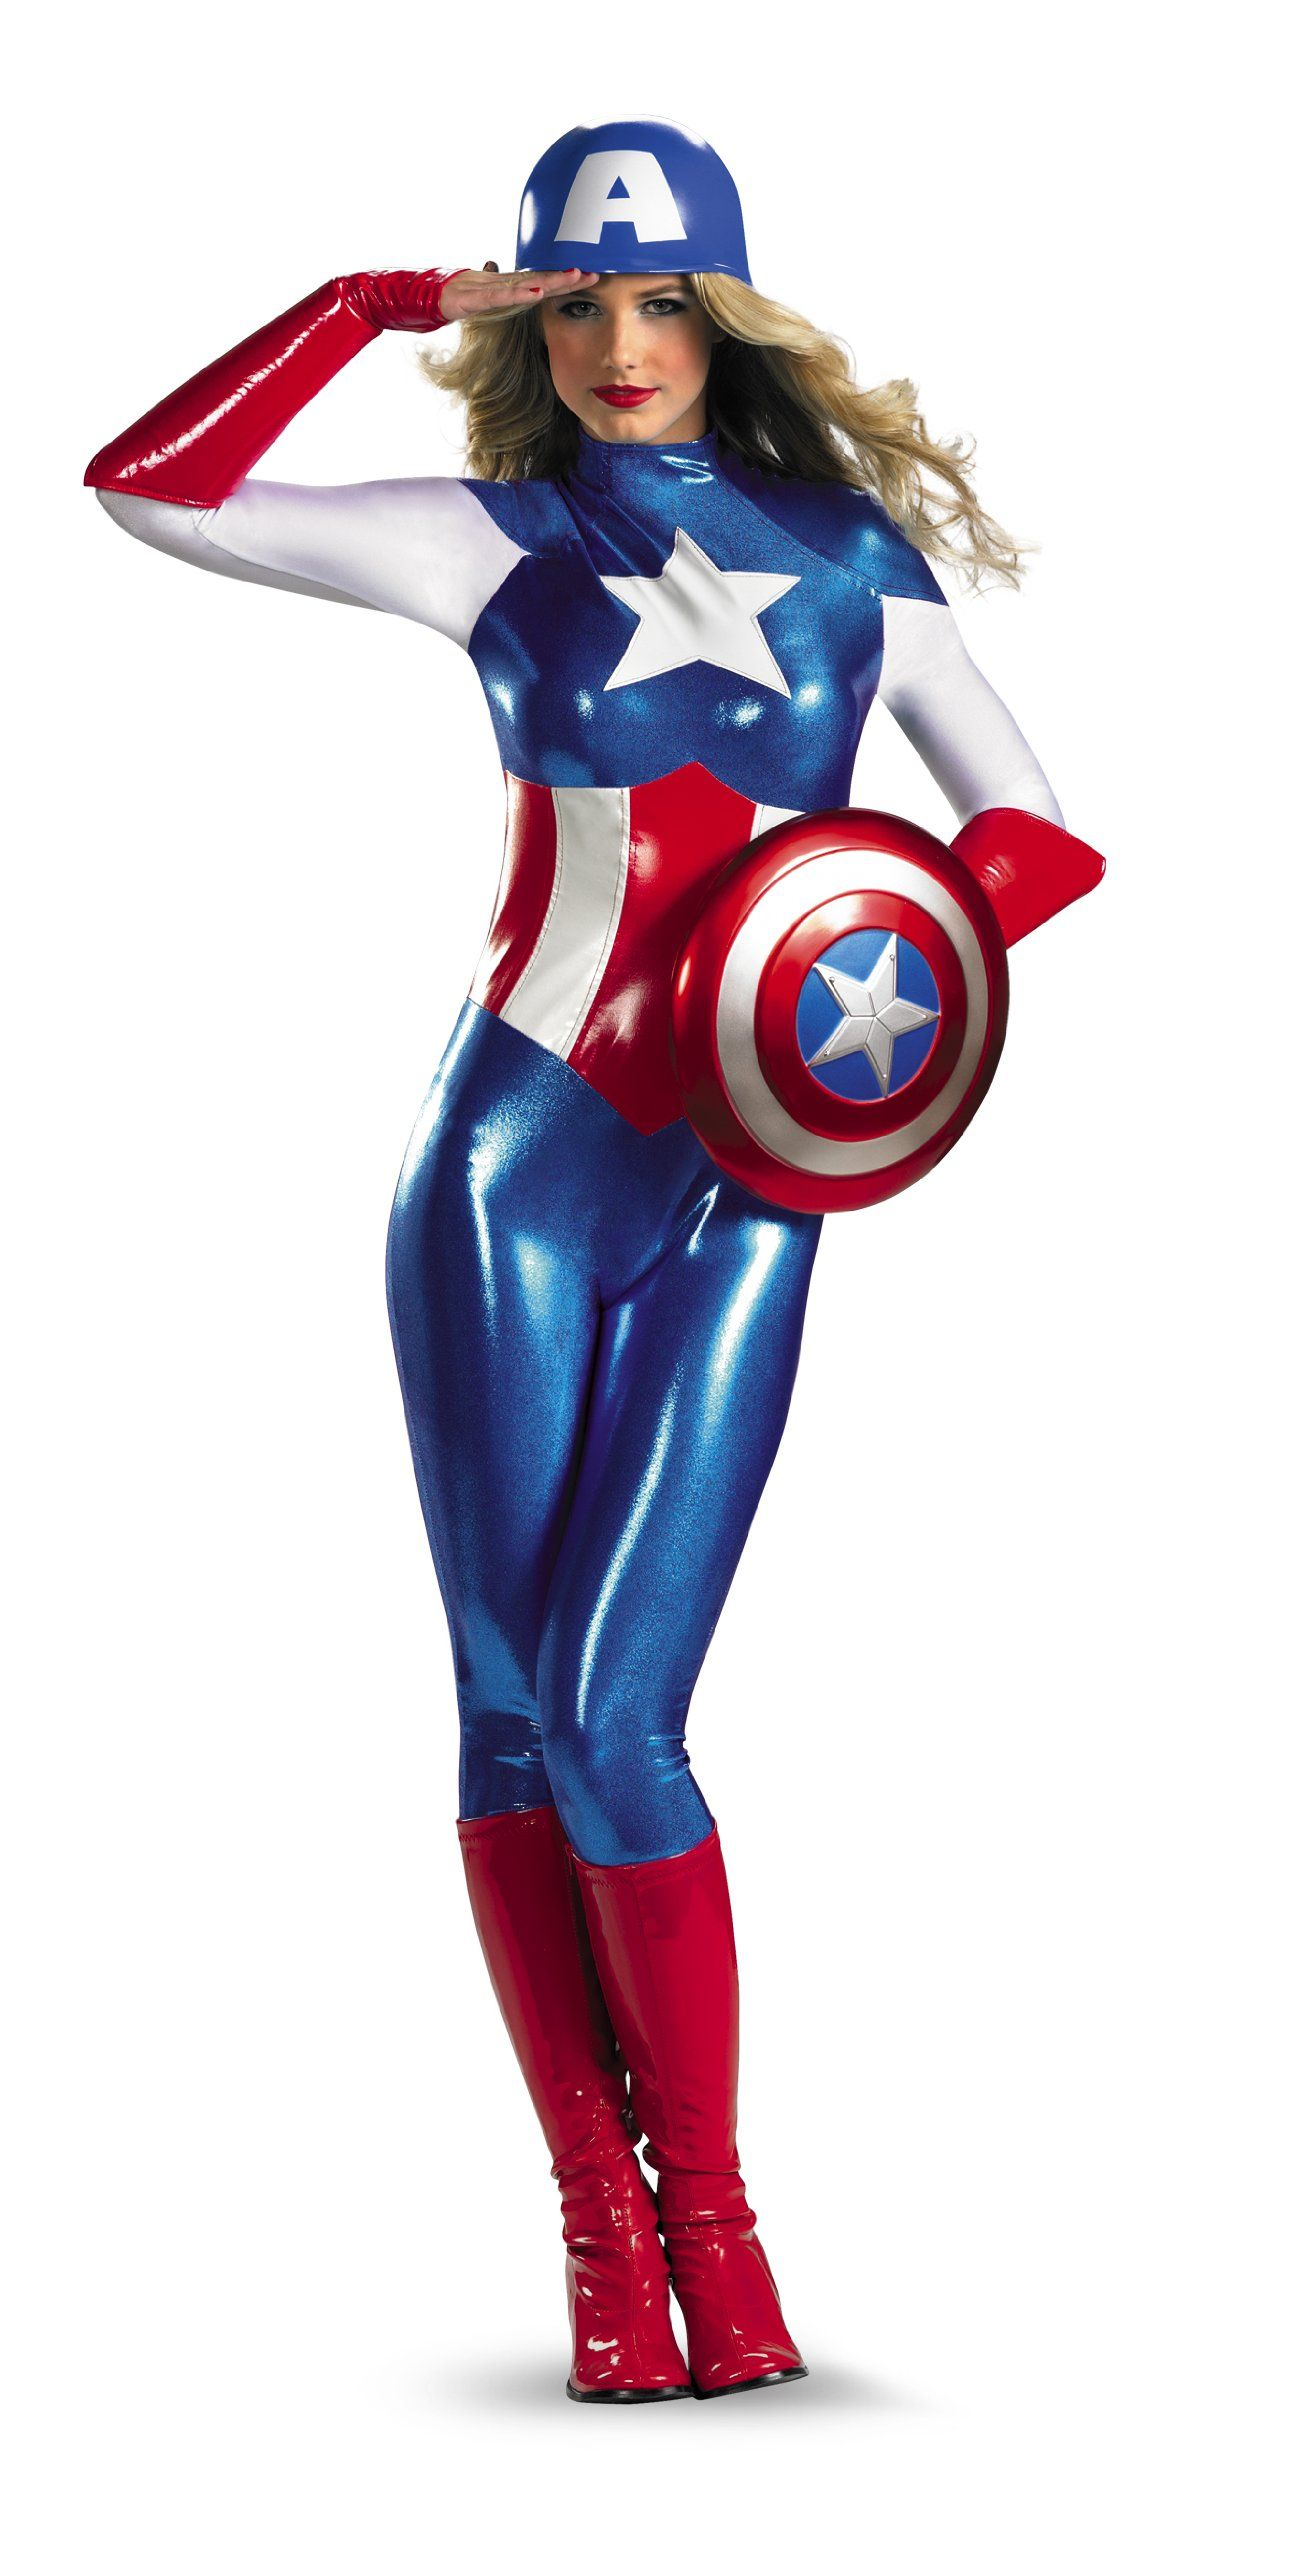 Pin On Z Love Alibaba.com offers 896 captain marvel costume products. pin on z love